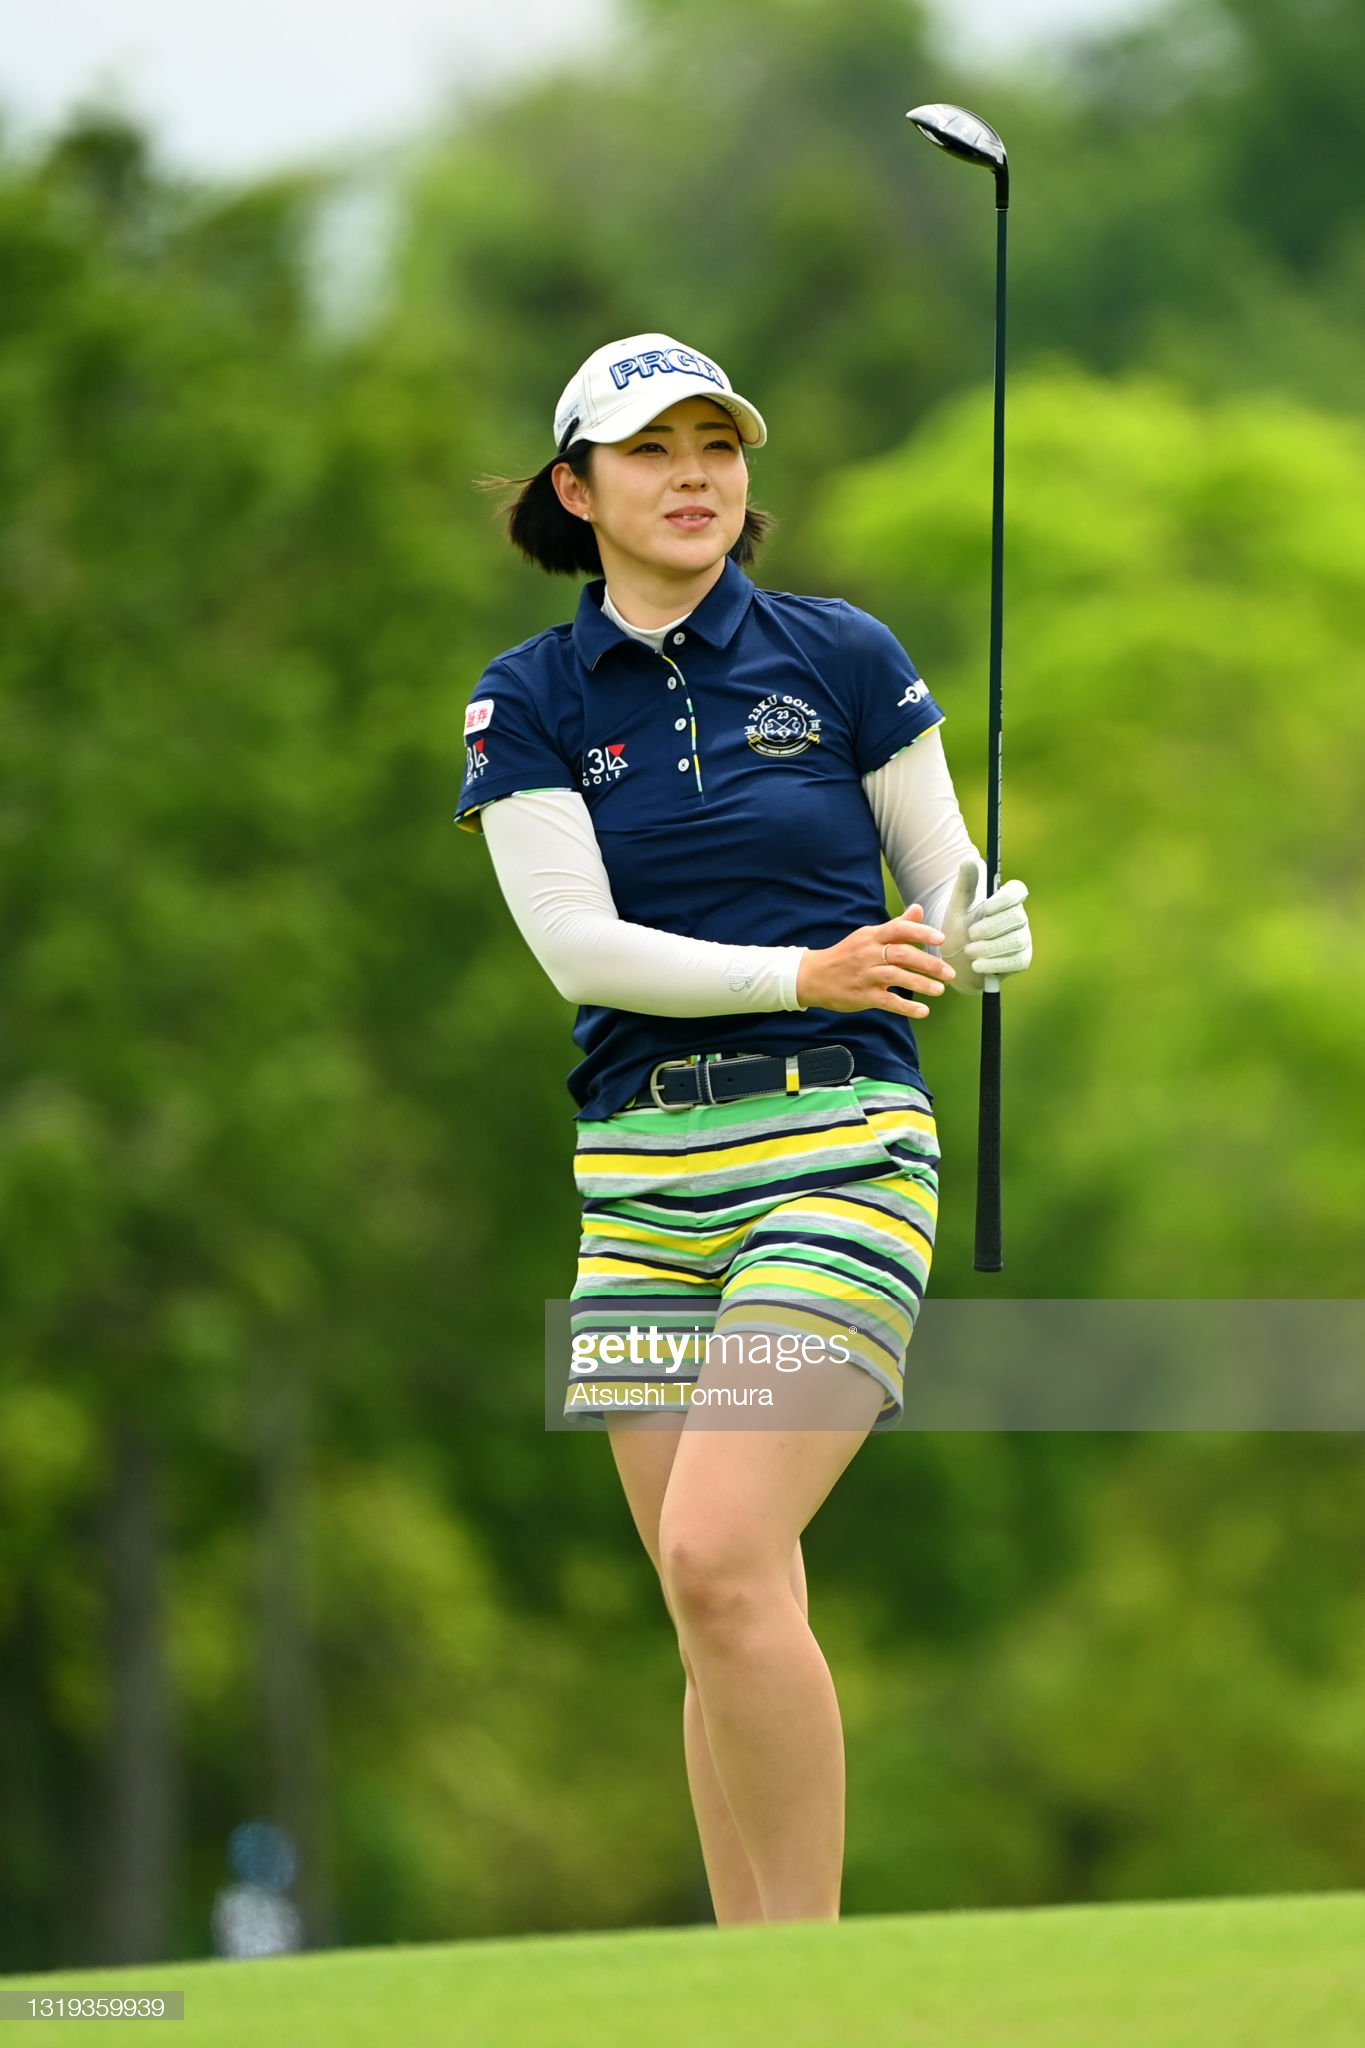 https://media.gettyimages.com/photos/rie-tsuji-of-japan-reacts-after-her-second-shot-on-the-16th-hole-the-picture-id1319359939?s=2048x2048